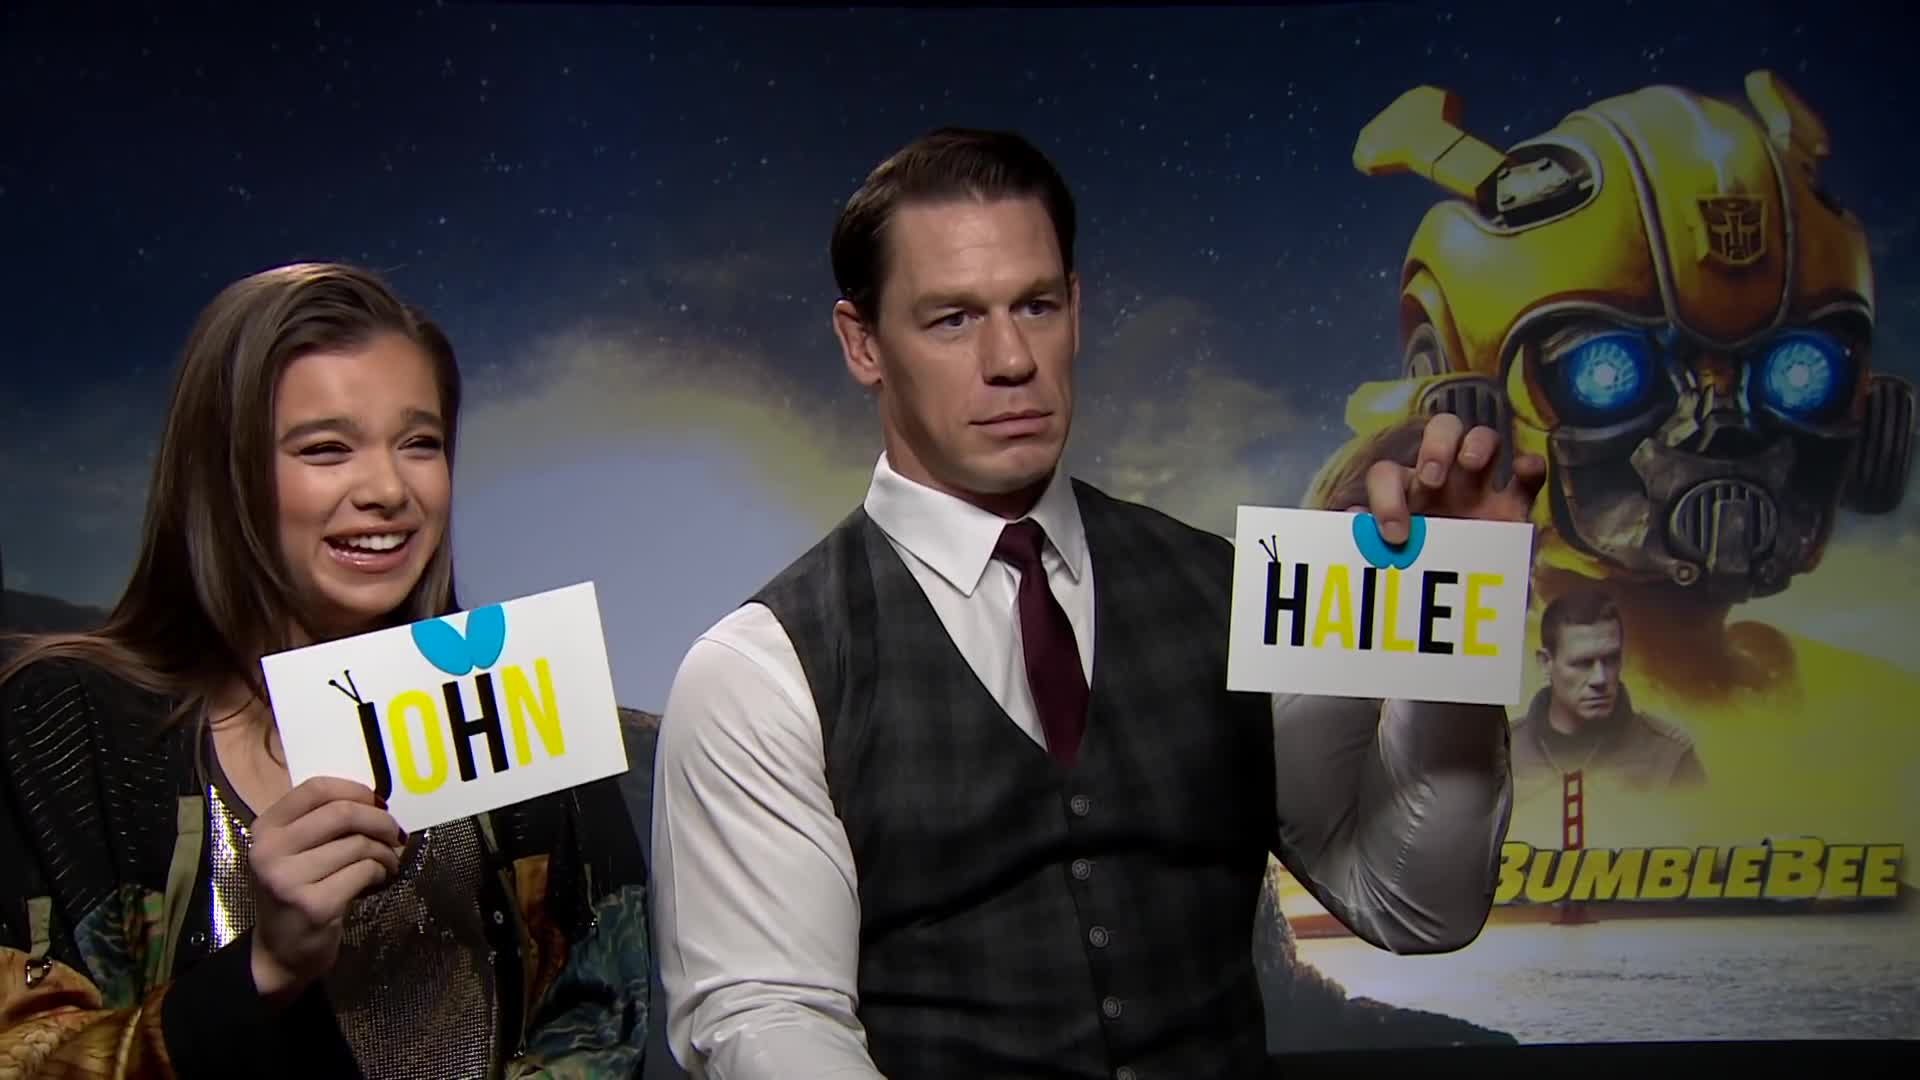 John cena, bumblebee, bumblebee movie, comedy, fun, hailee steinfeld, john cena, john cena meme, lovevie, lovevie interview, lovevie mumma mia, lovevie mummamia, makeup, skit, JOHN CENA & HAILEE STEINFELD PLAY WHO'S MOST LIKELY TO! BumbleBee Movie Interview / Lovevie GIFs